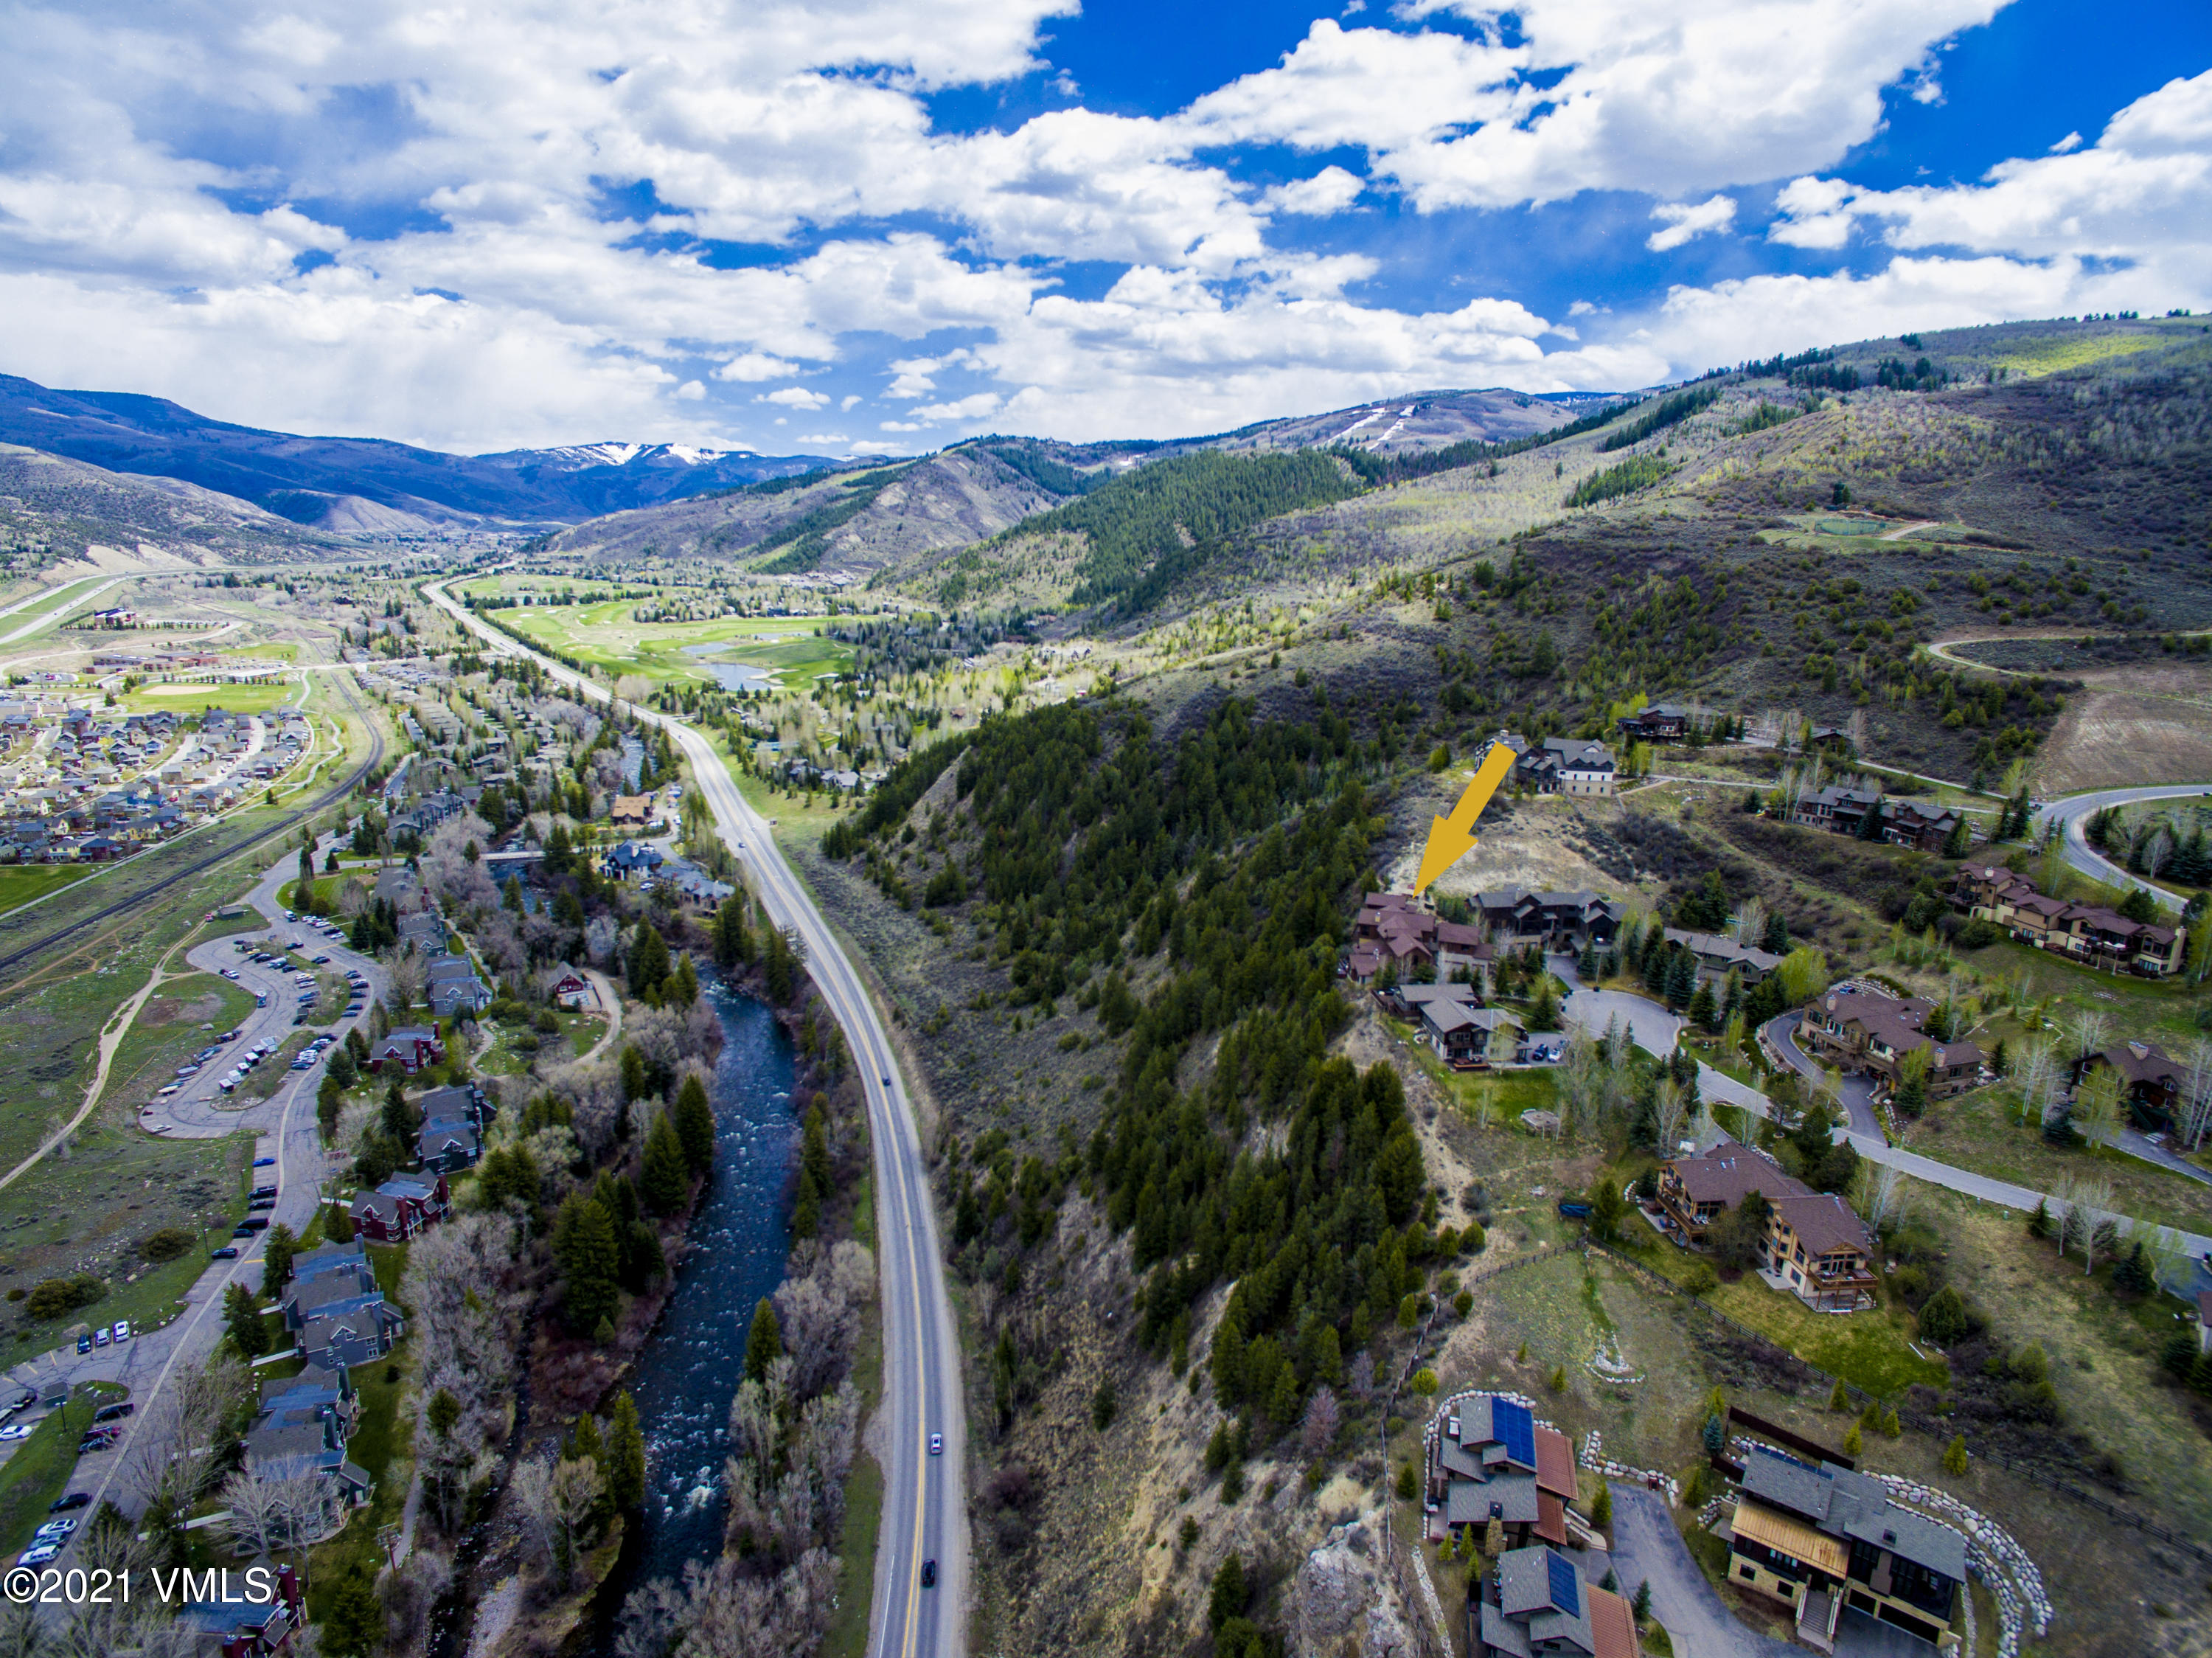 This Homestead duplex has excellent views of Game Creek Bowl and the Eagle River from the great room and the primary suite on it's own floor.  The large kitchen has been renovated and offers lots of space to entertain with easy access to the private patio or expansive balcony.  In addition to 4 bedrooms there is an office, family room with a wet bar, 2 laundry rooms and a 3-car garage. This home is located at the end of a cul-de-sac in a quiet neighborhood and close to all the amenities of Edwards.